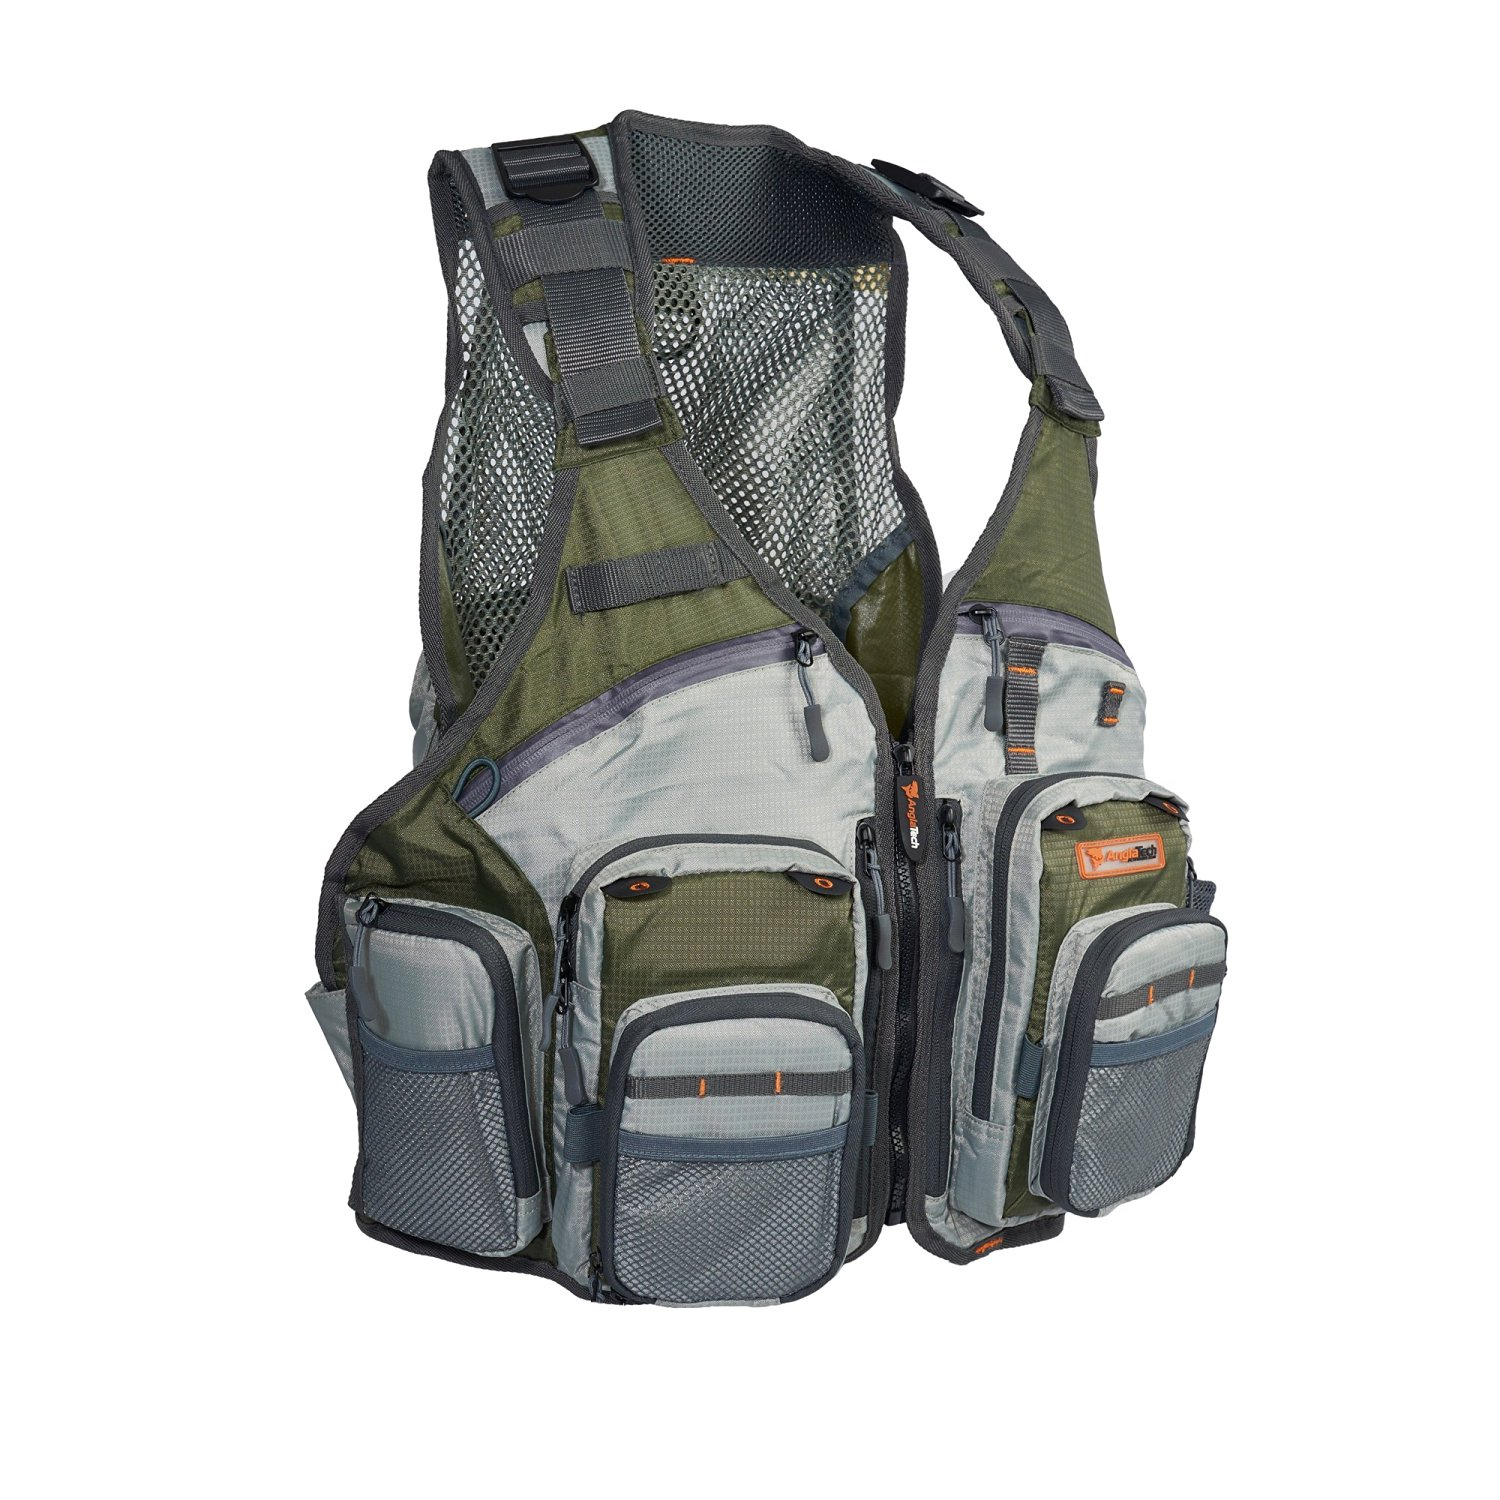 Bass pro shops 100mph gore tex rain bibs for men fishingnew for Fly fishing vest